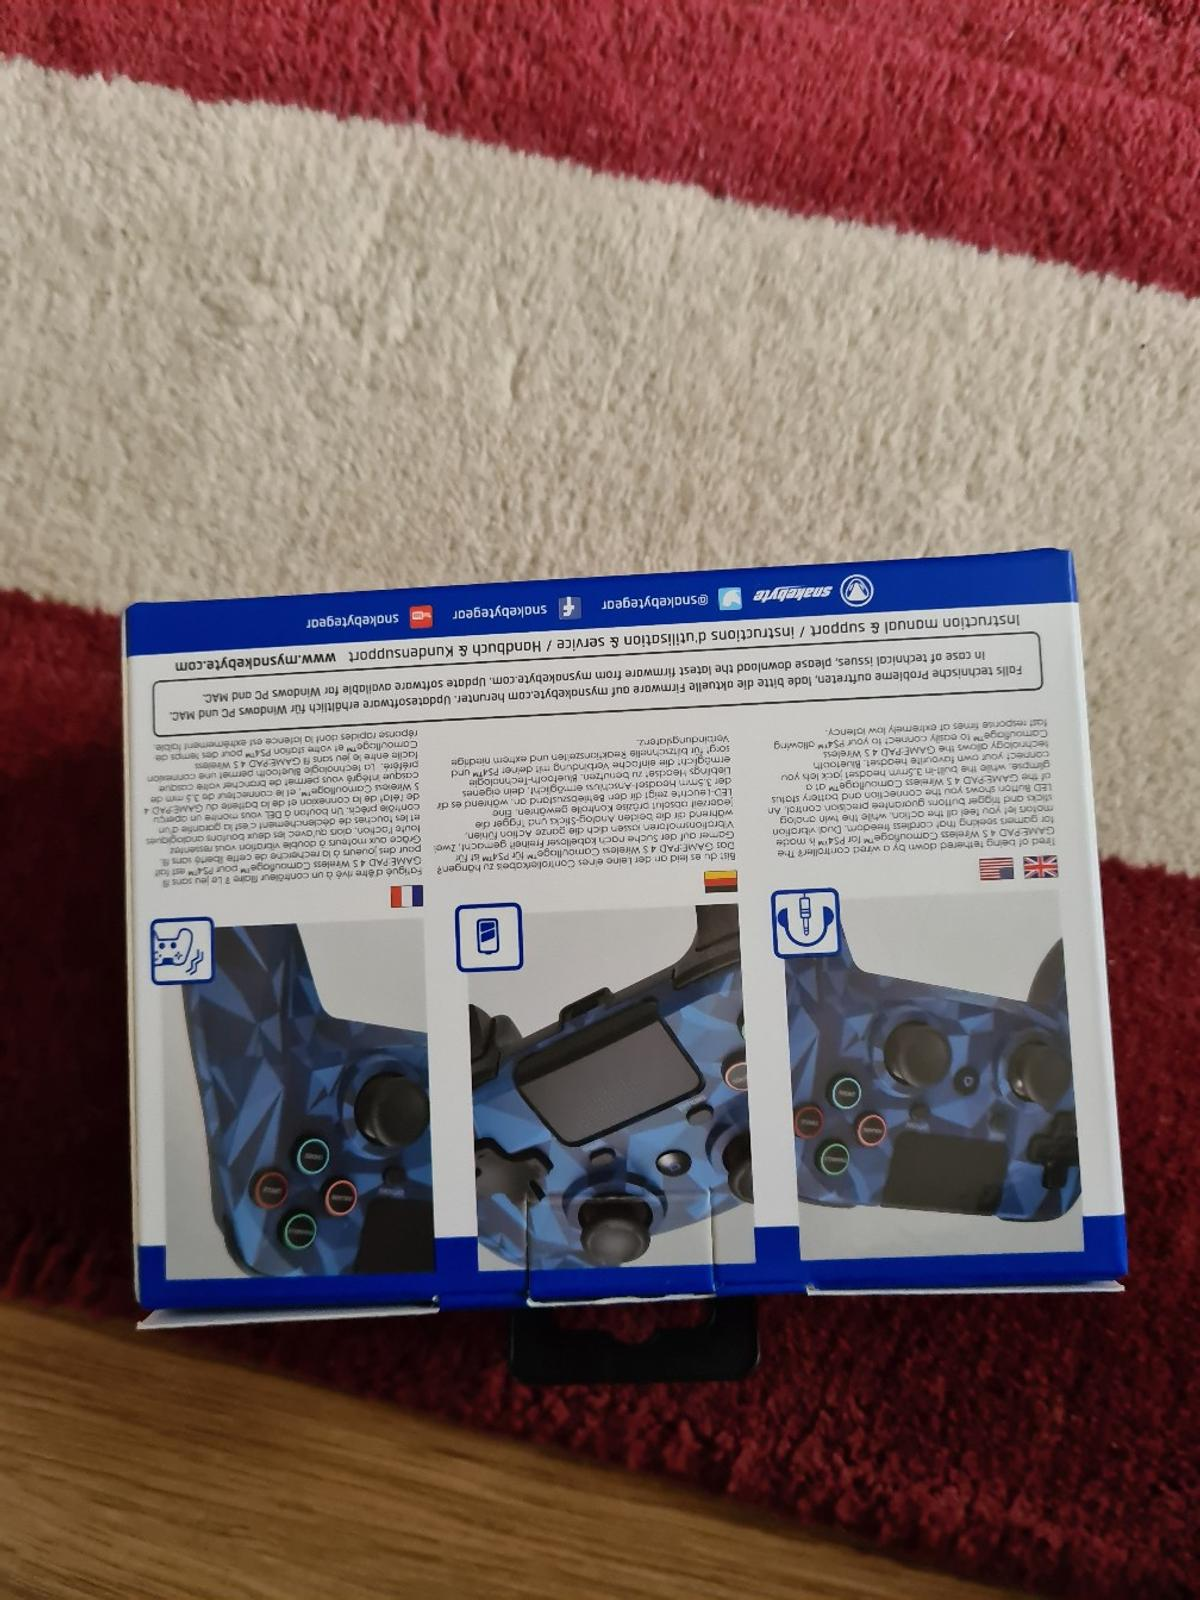 used only once - wireless camouflage, Blue game pad 4S purchased from Argos.  suitable for a PS4 Slim and Pro.  £35 brand new.